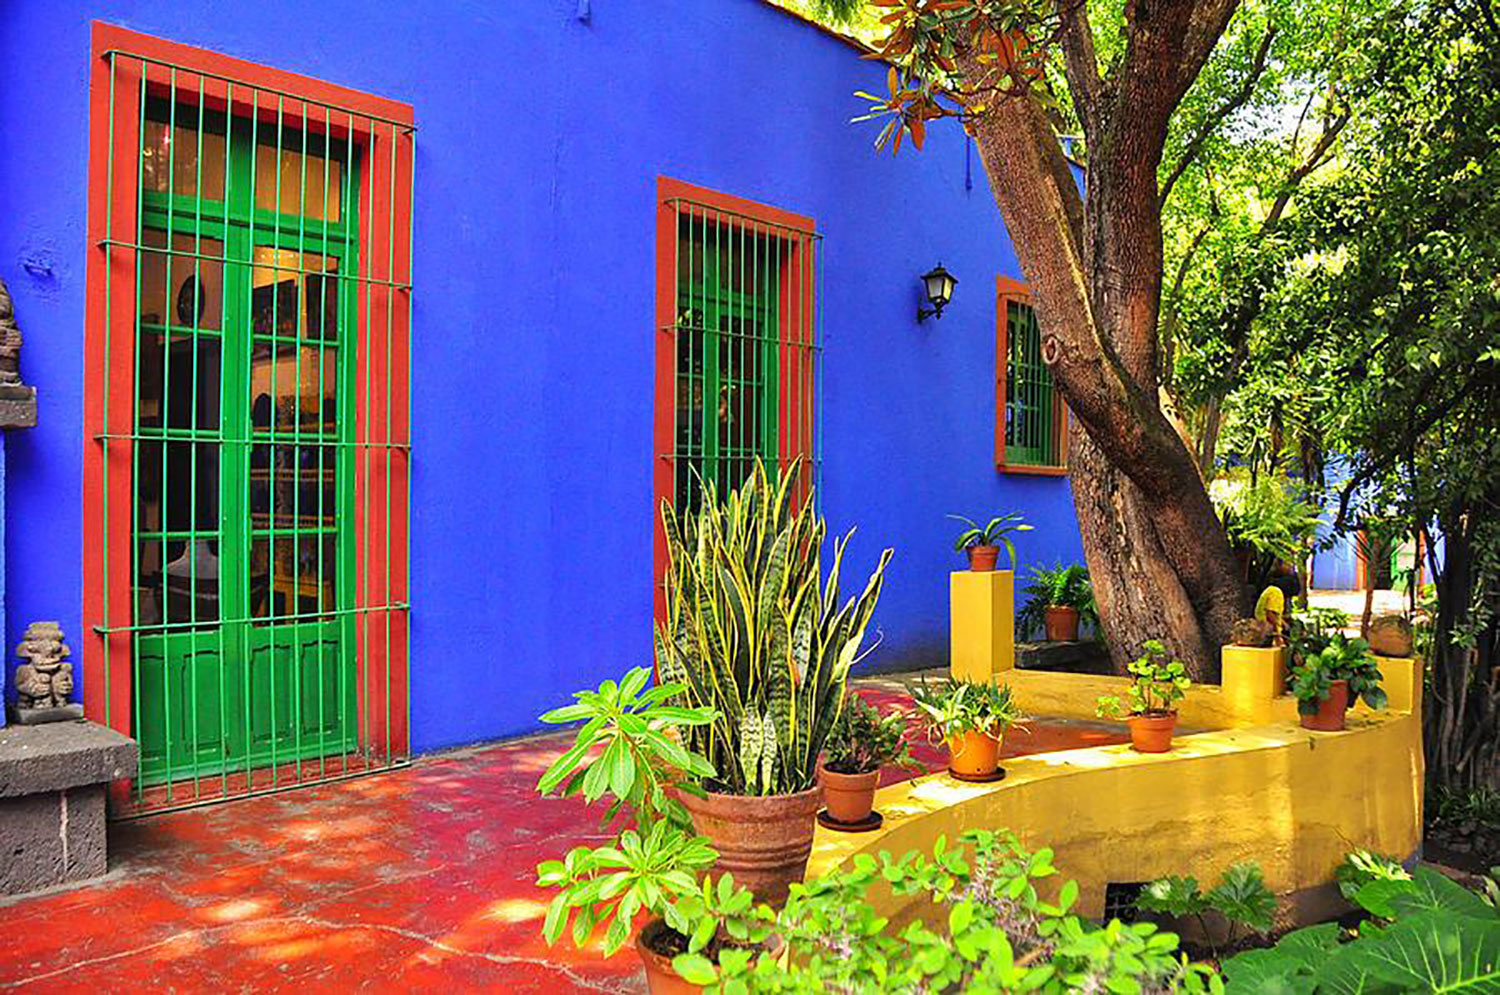 Frida's Blue House in Mexico City.